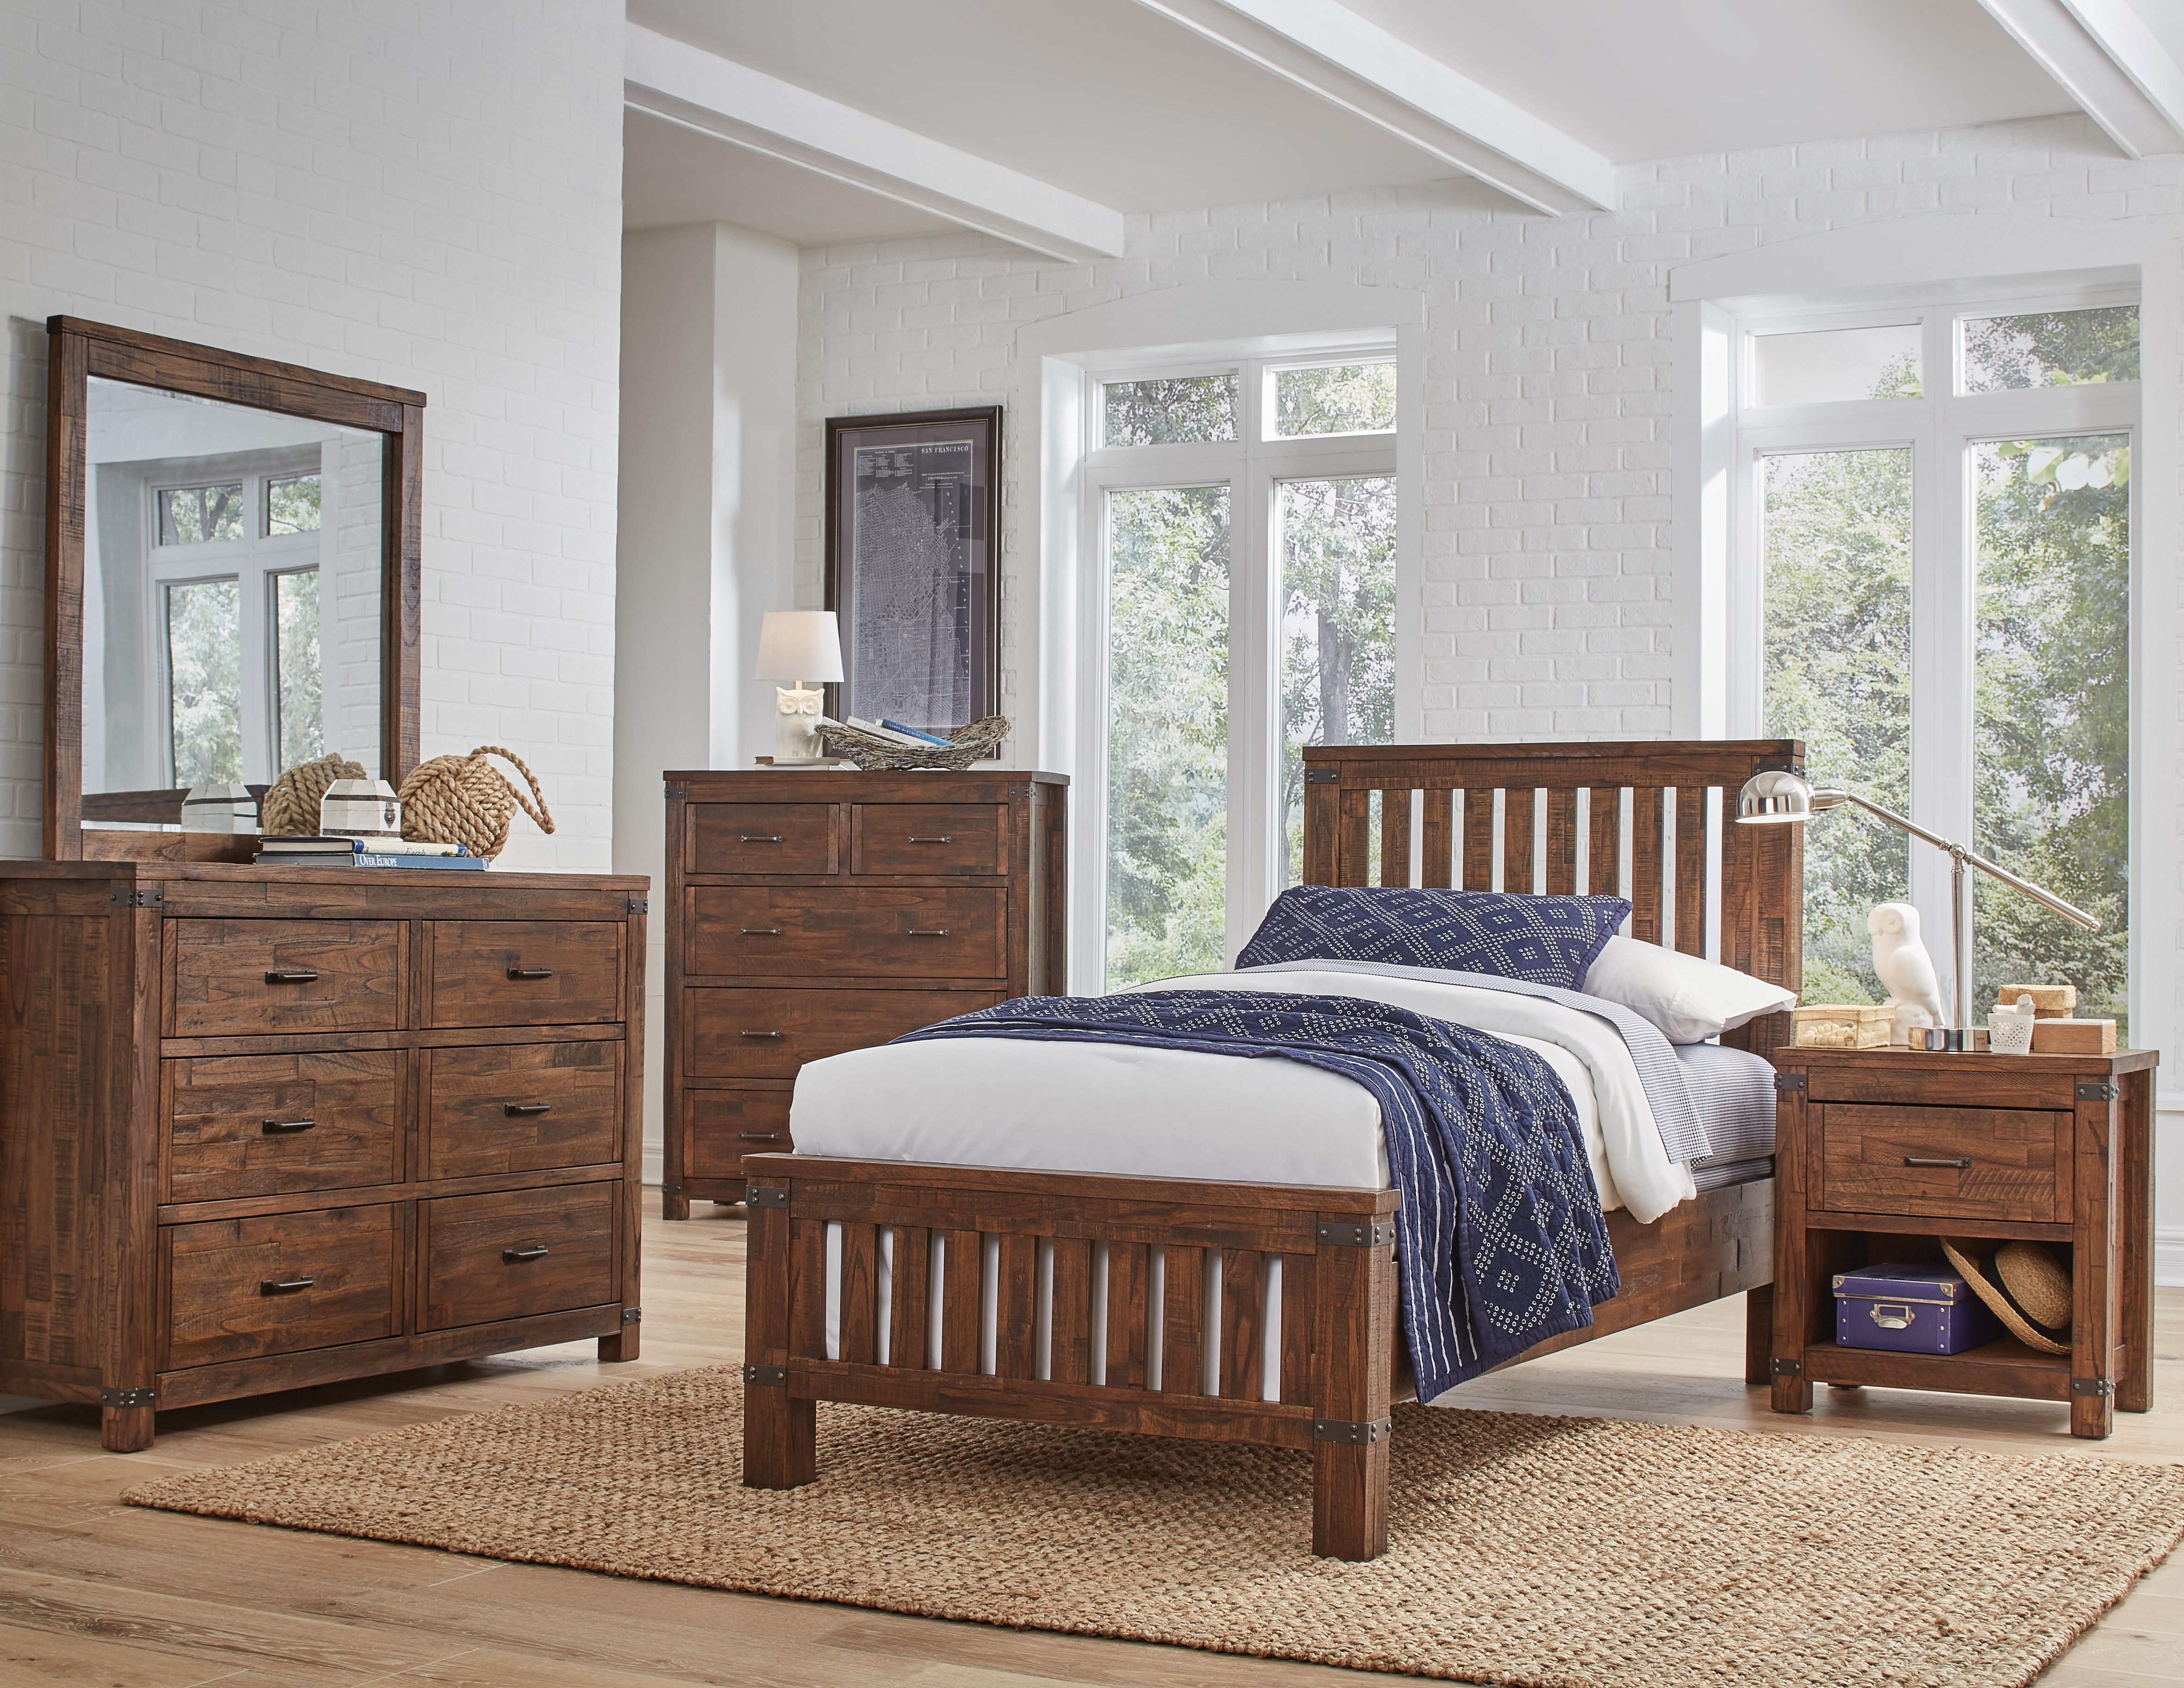 Lil Everett 4 Piece Twin Bedroom - Brushed Acacia